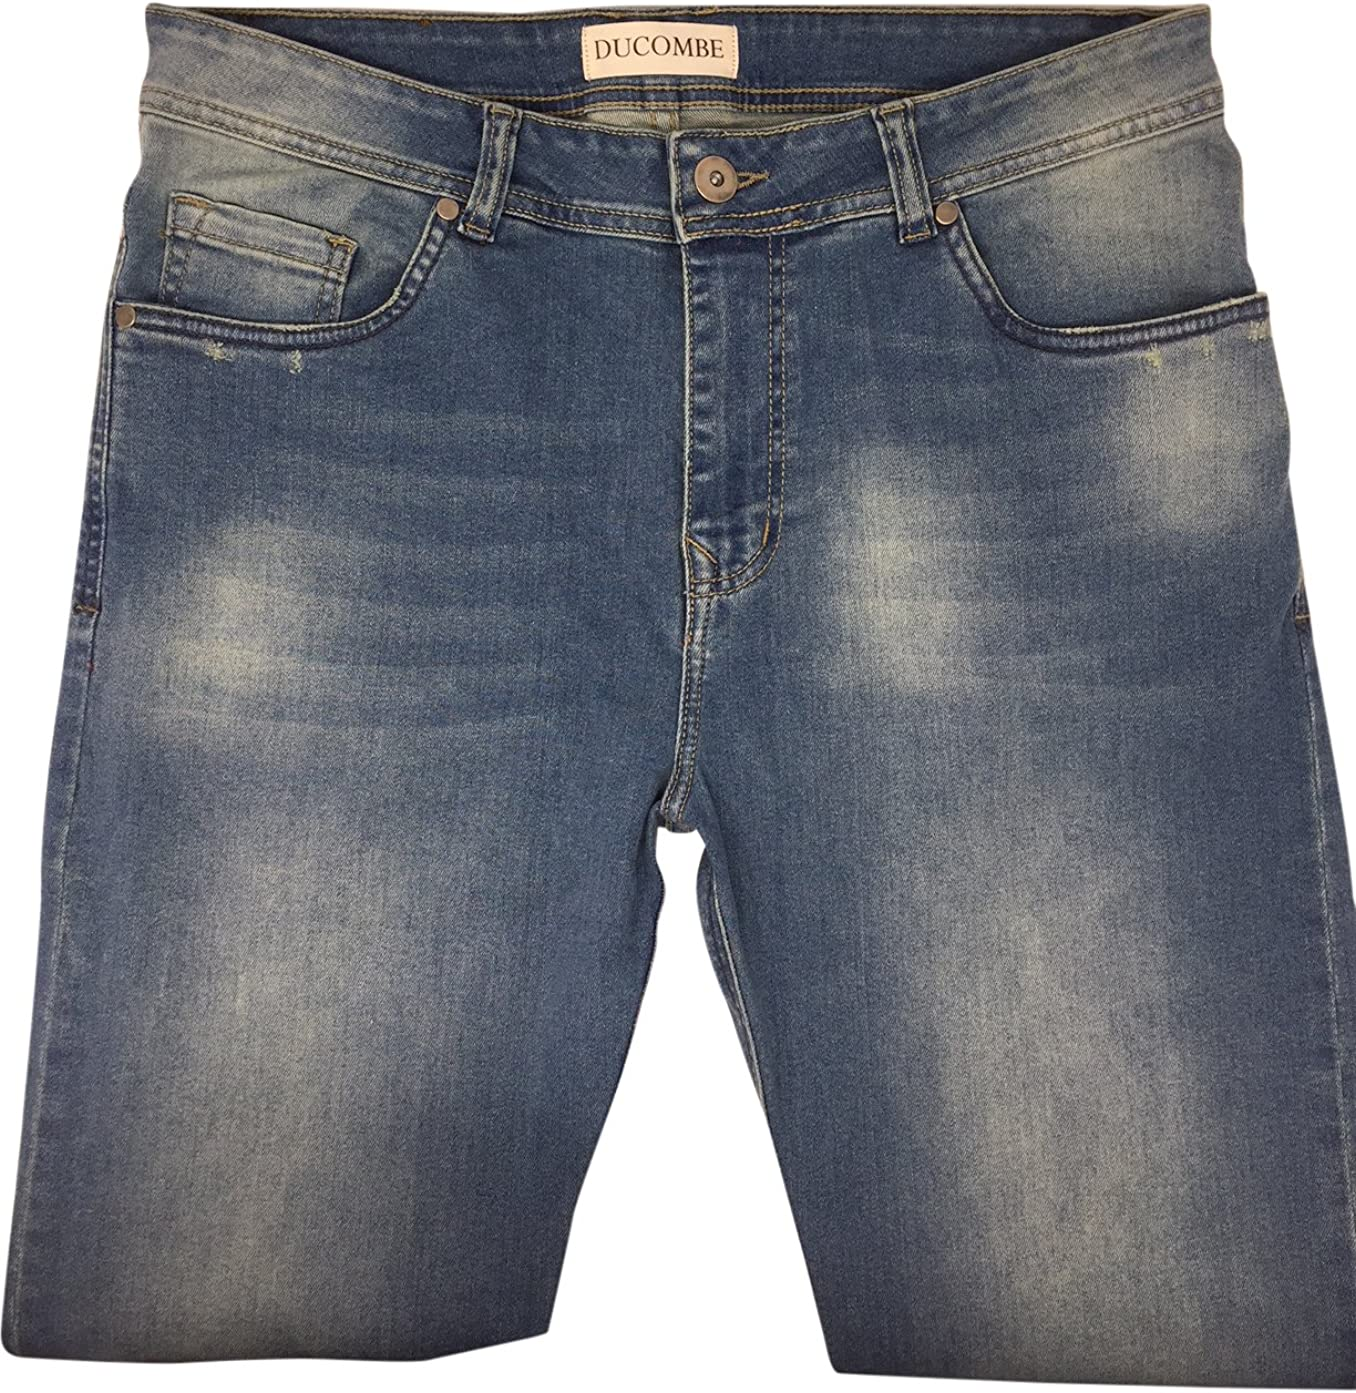 """28 Inches Inseam Jeans - A Classic 5 Pocket Tapered Leg fit Jean for Men Under 5'6"""" - Blue Mens Jeans 28"""